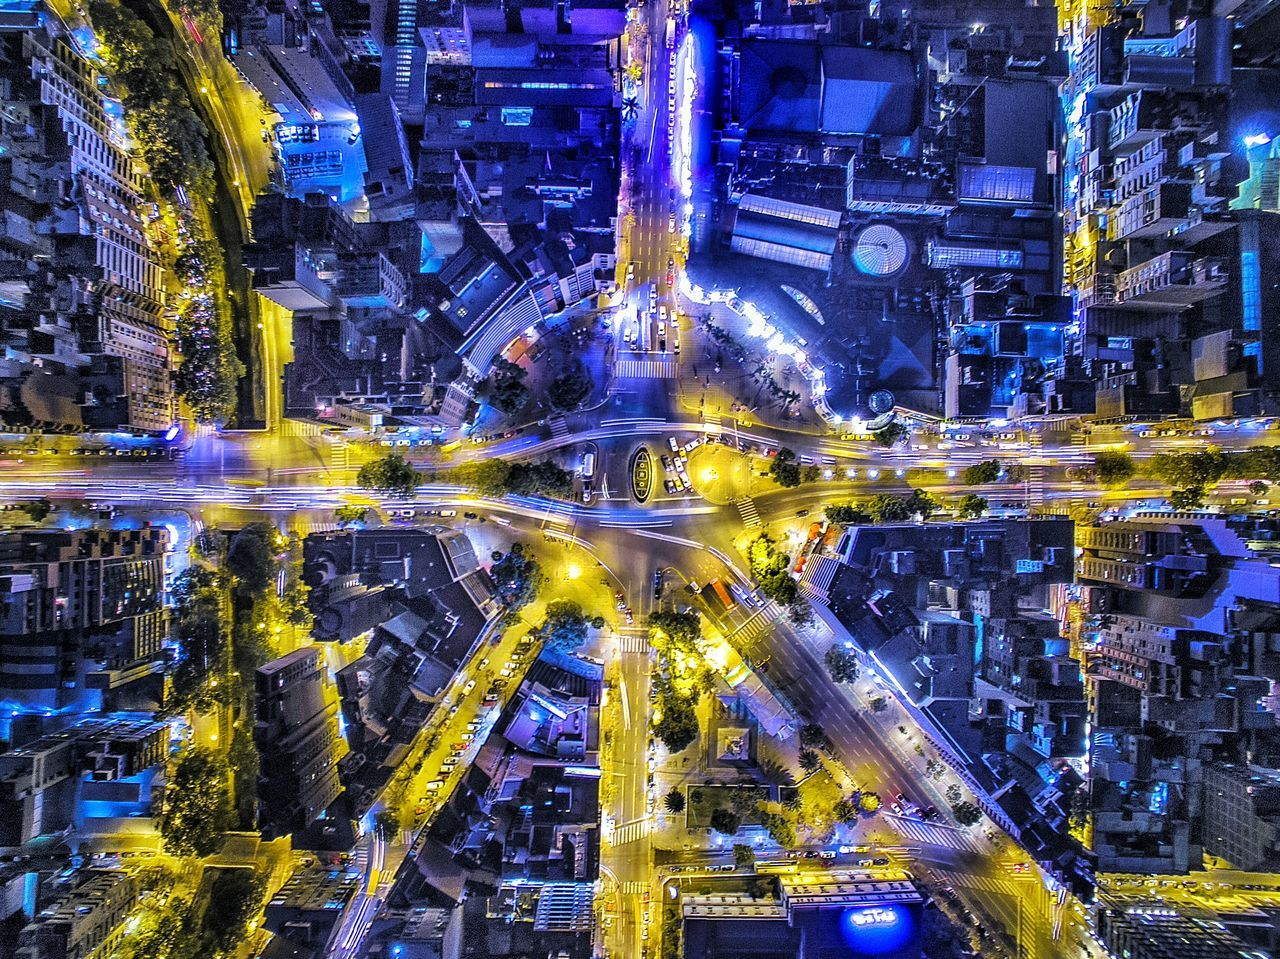 Directly Above View Of Illuminated Road Intersection In City At Night